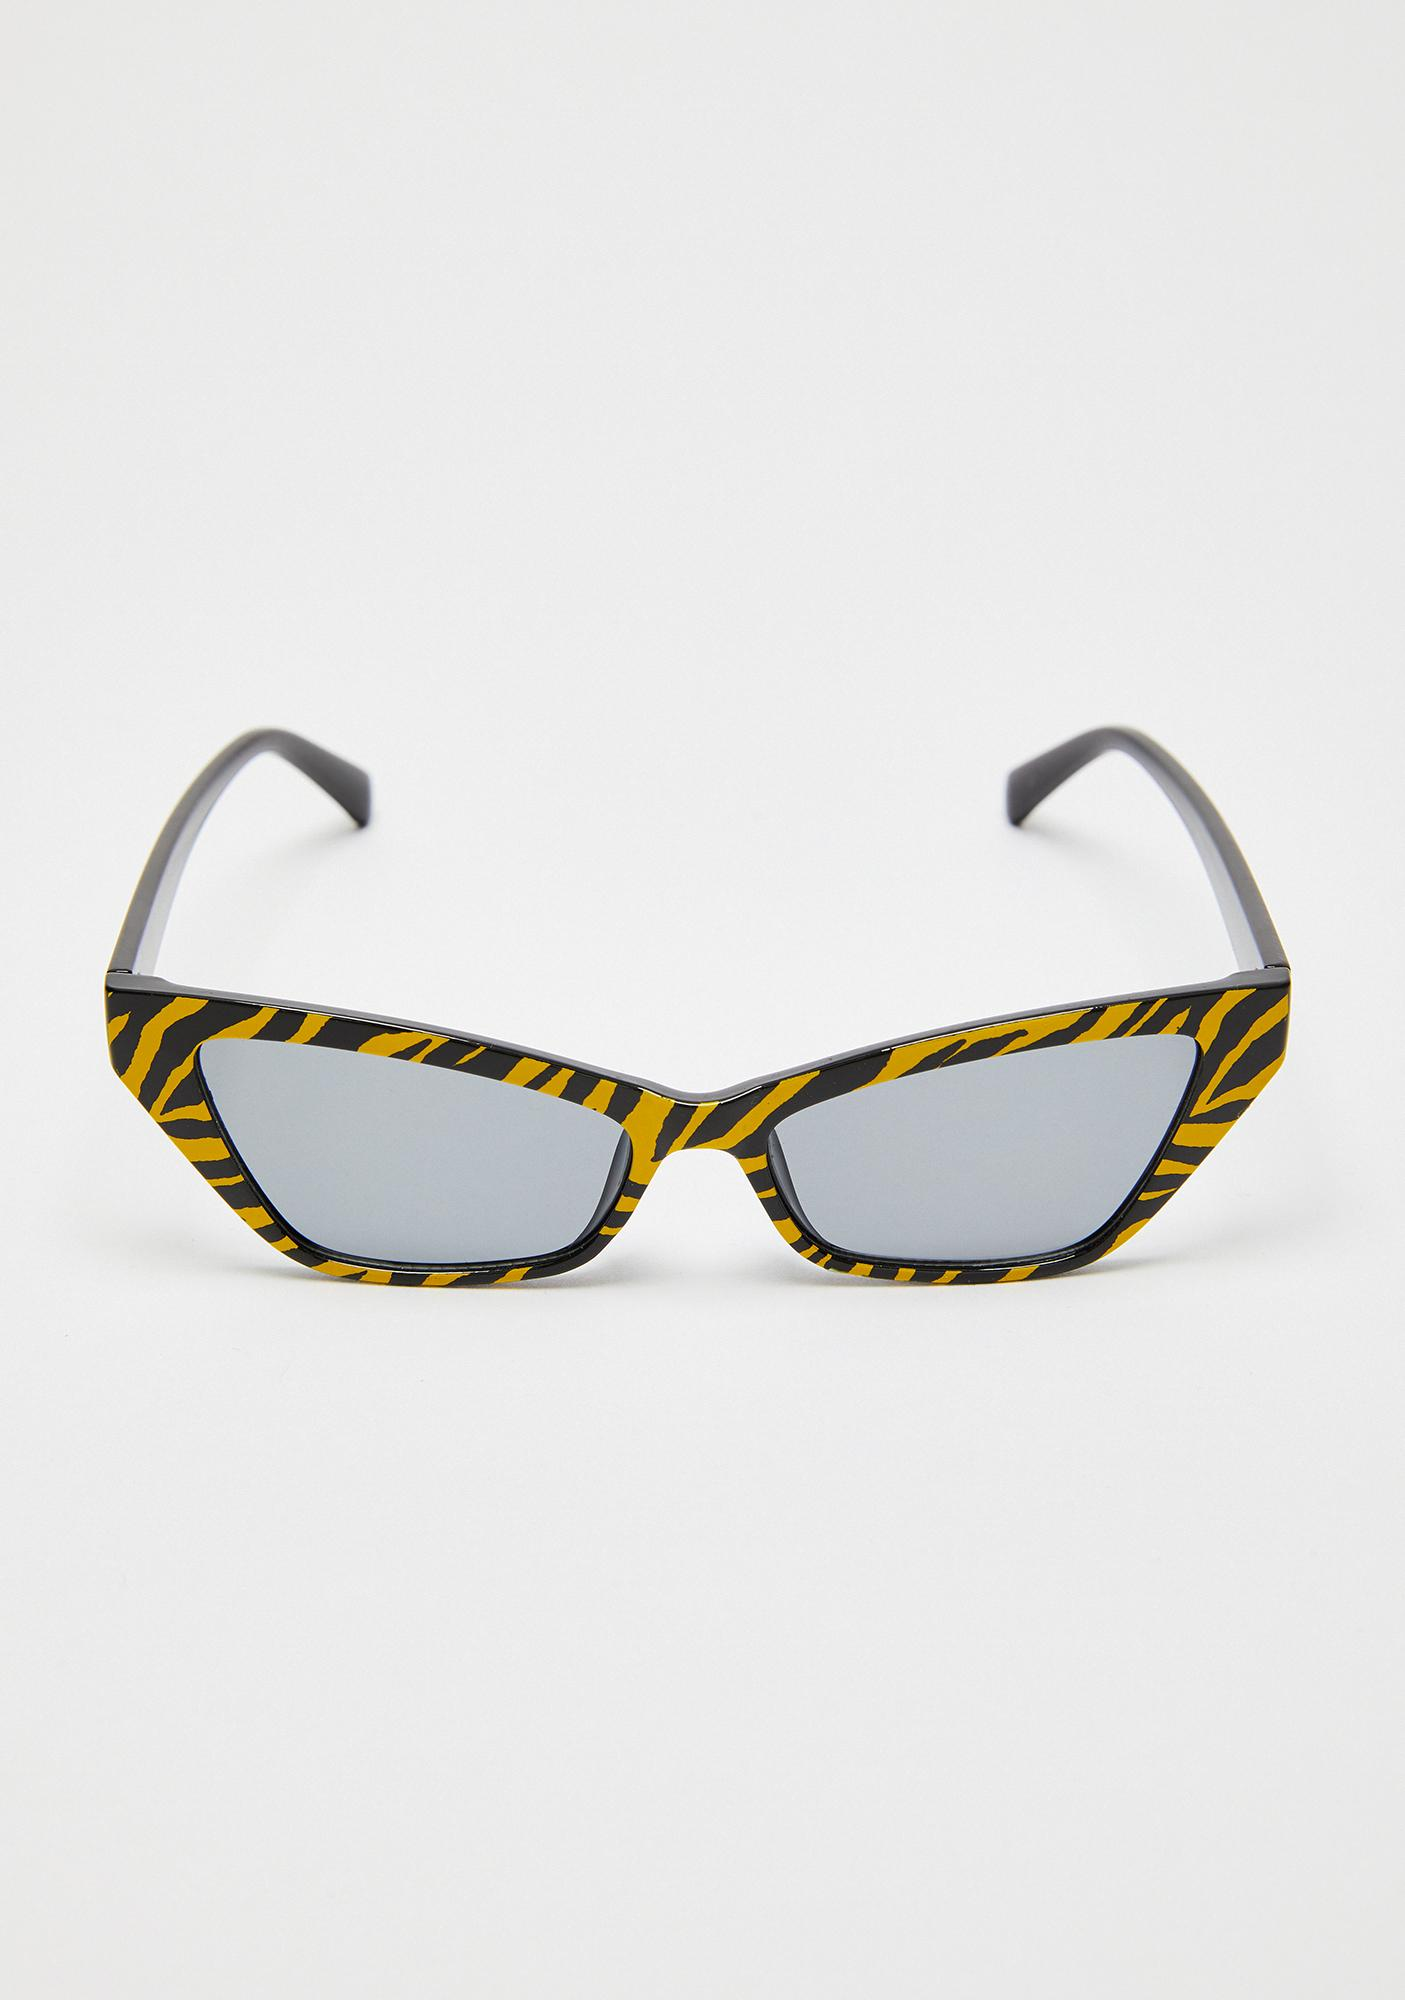 Replay Vintage Sunglasses Miss Tiger Cat-Eye Sunglasses